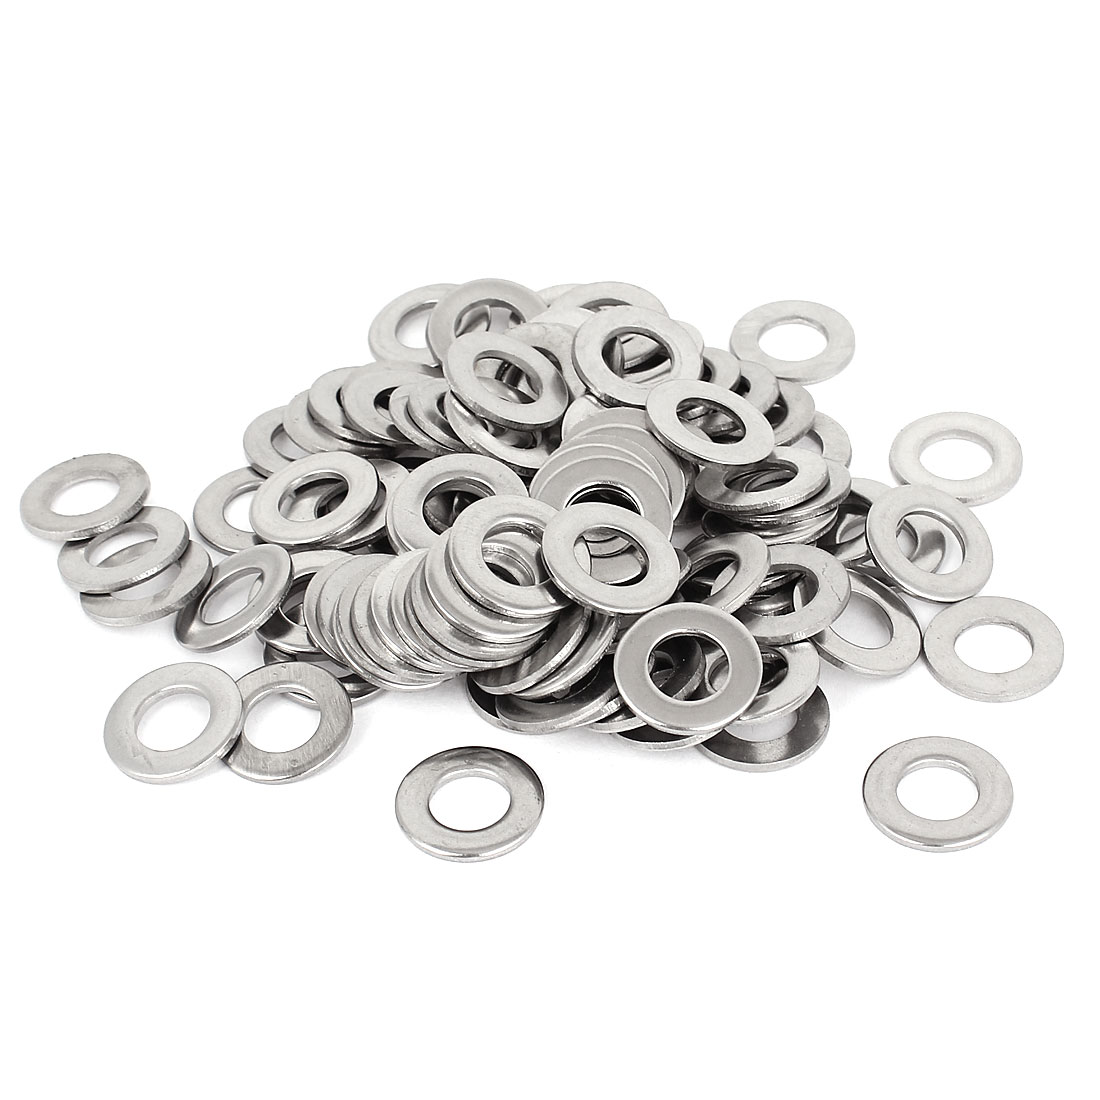 "100pcs Silver Tone 304 Stainless Steel Flat Washer 3/8"" for Screws Bolts"